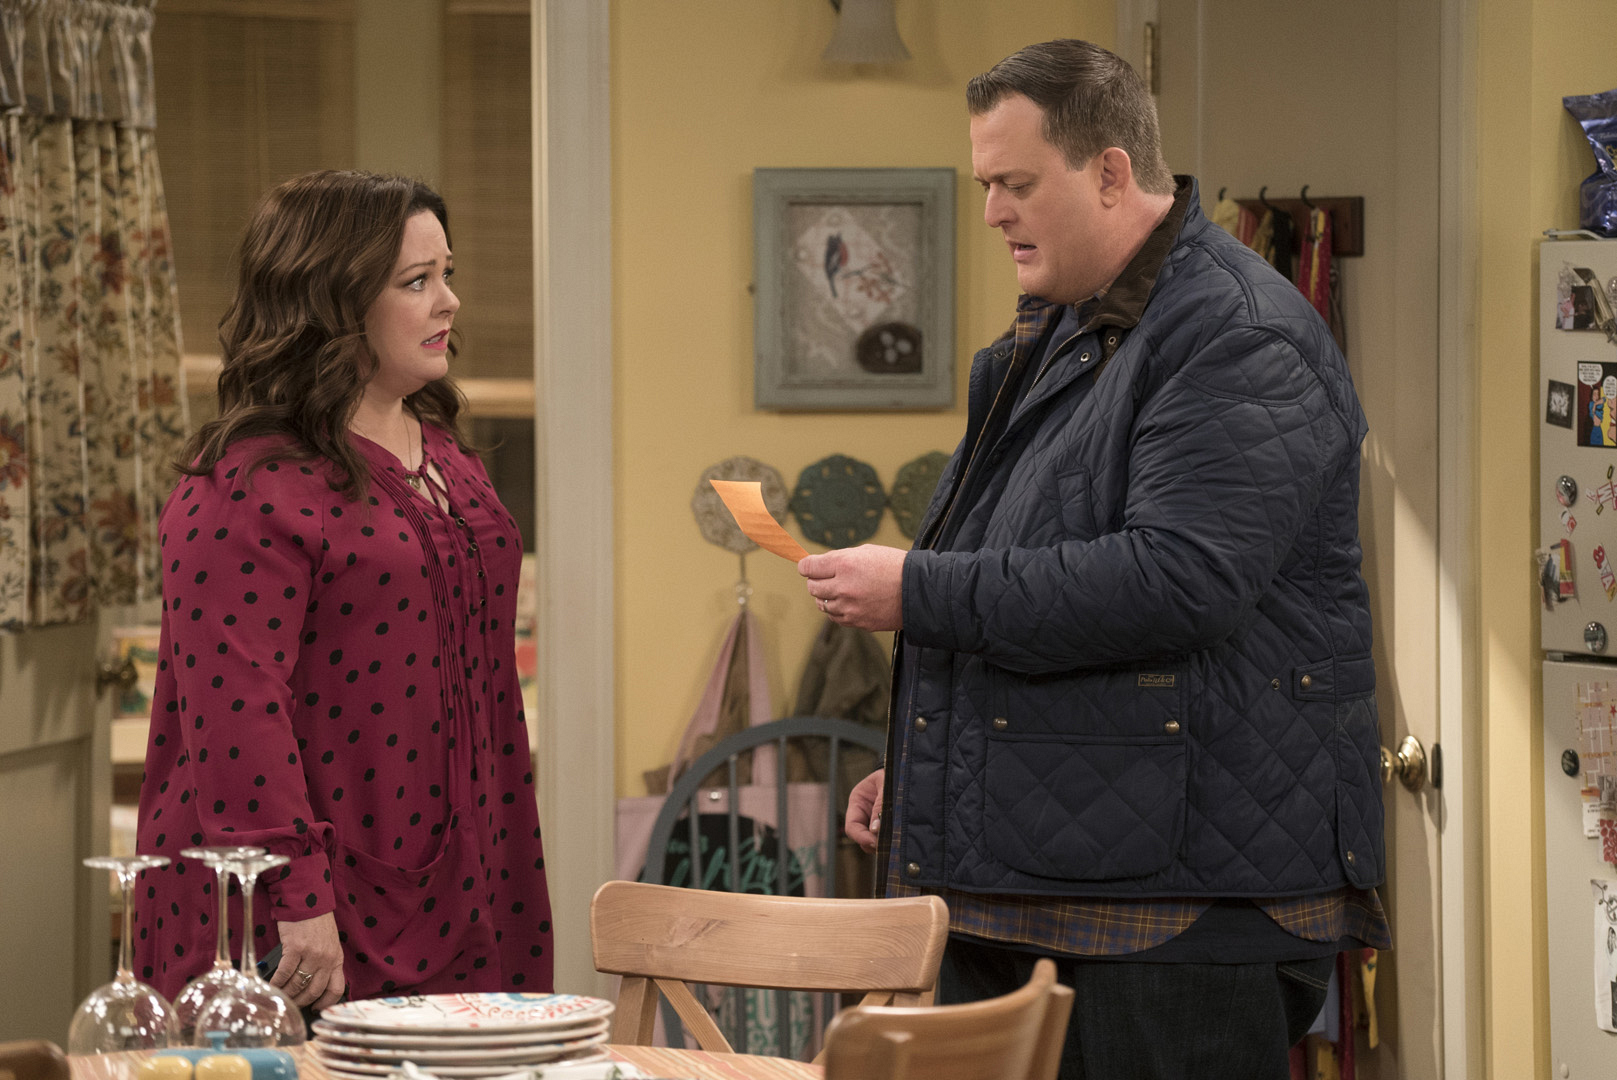 Mike is shocked after Molly makes a major life decision without him.